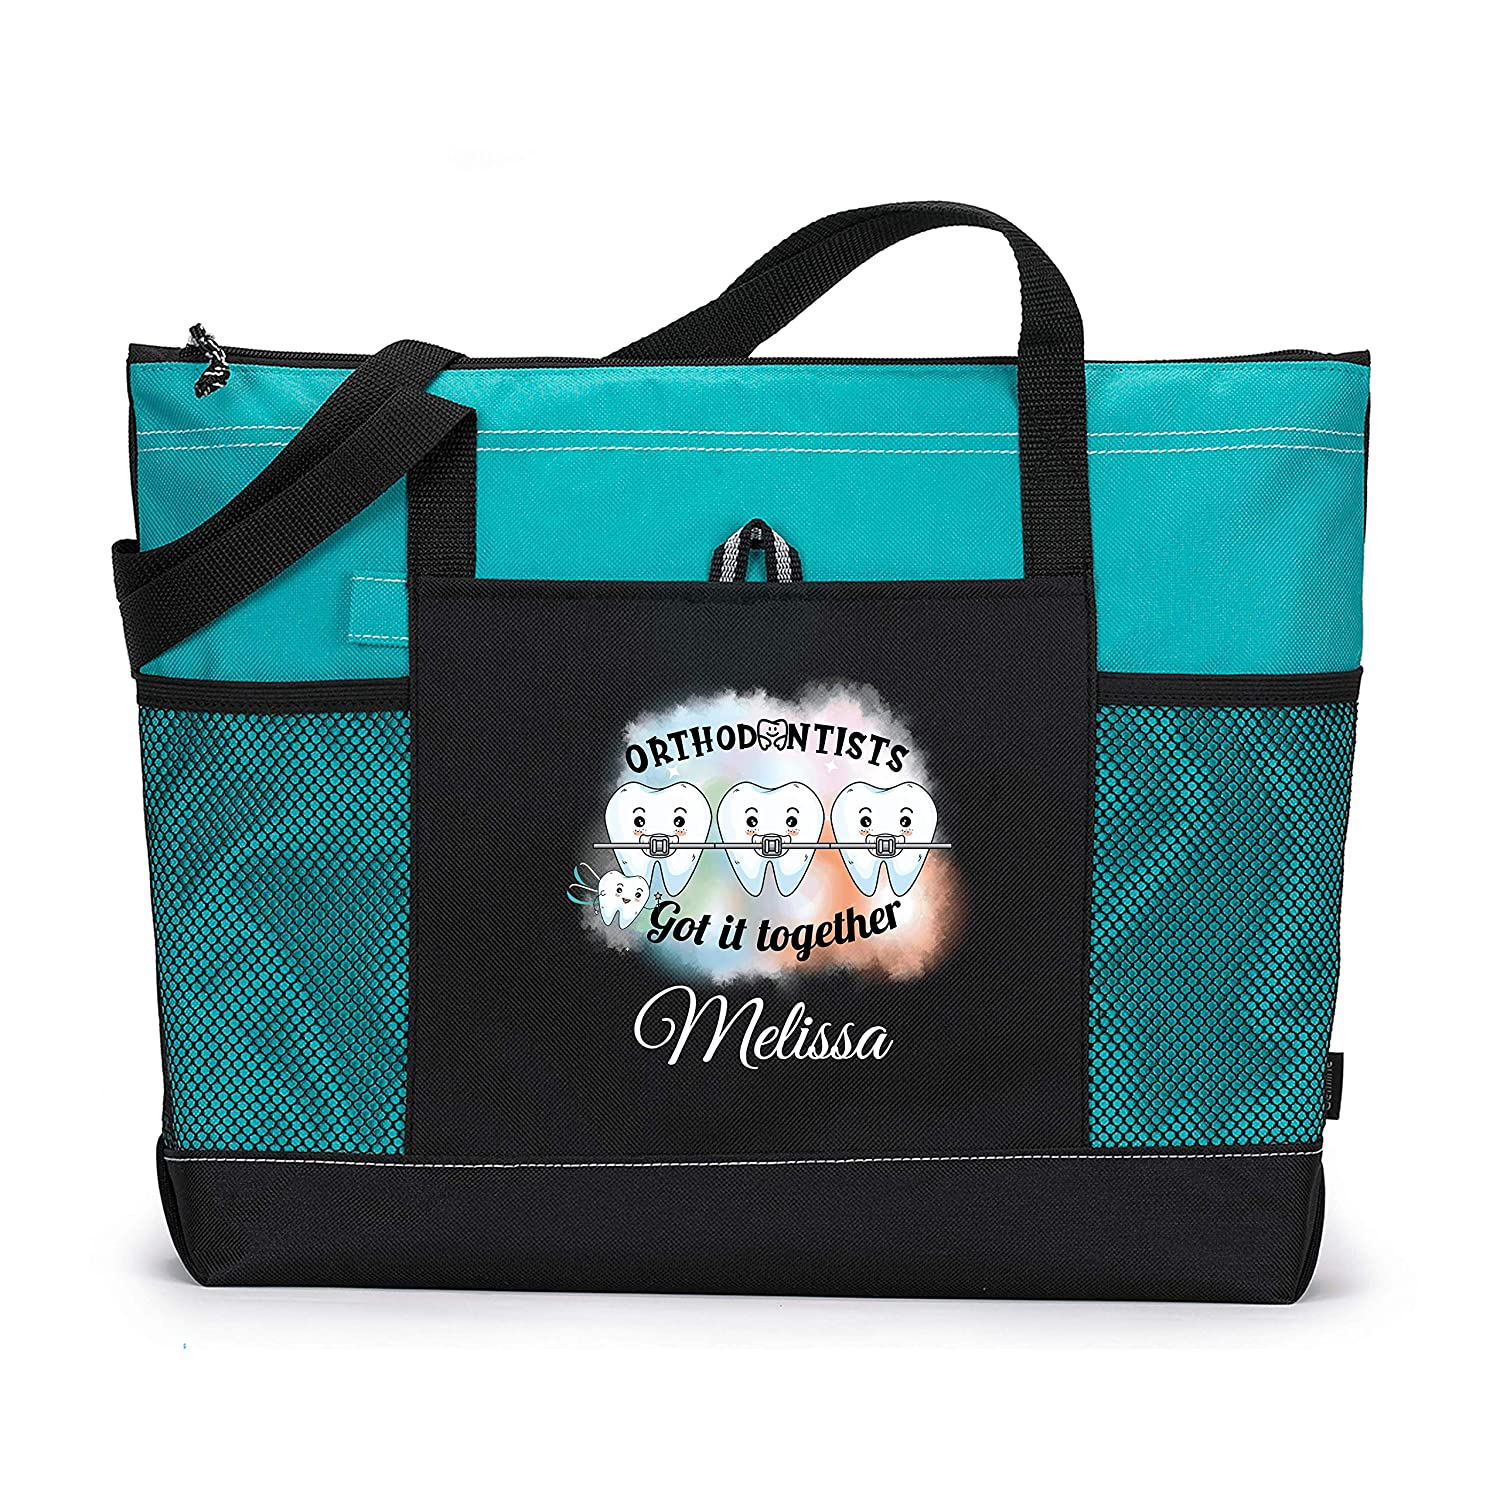 Orthodontists Got Ranking TOP13 It Together Personalized Tote Printed with Bag Oklahoma City Mall